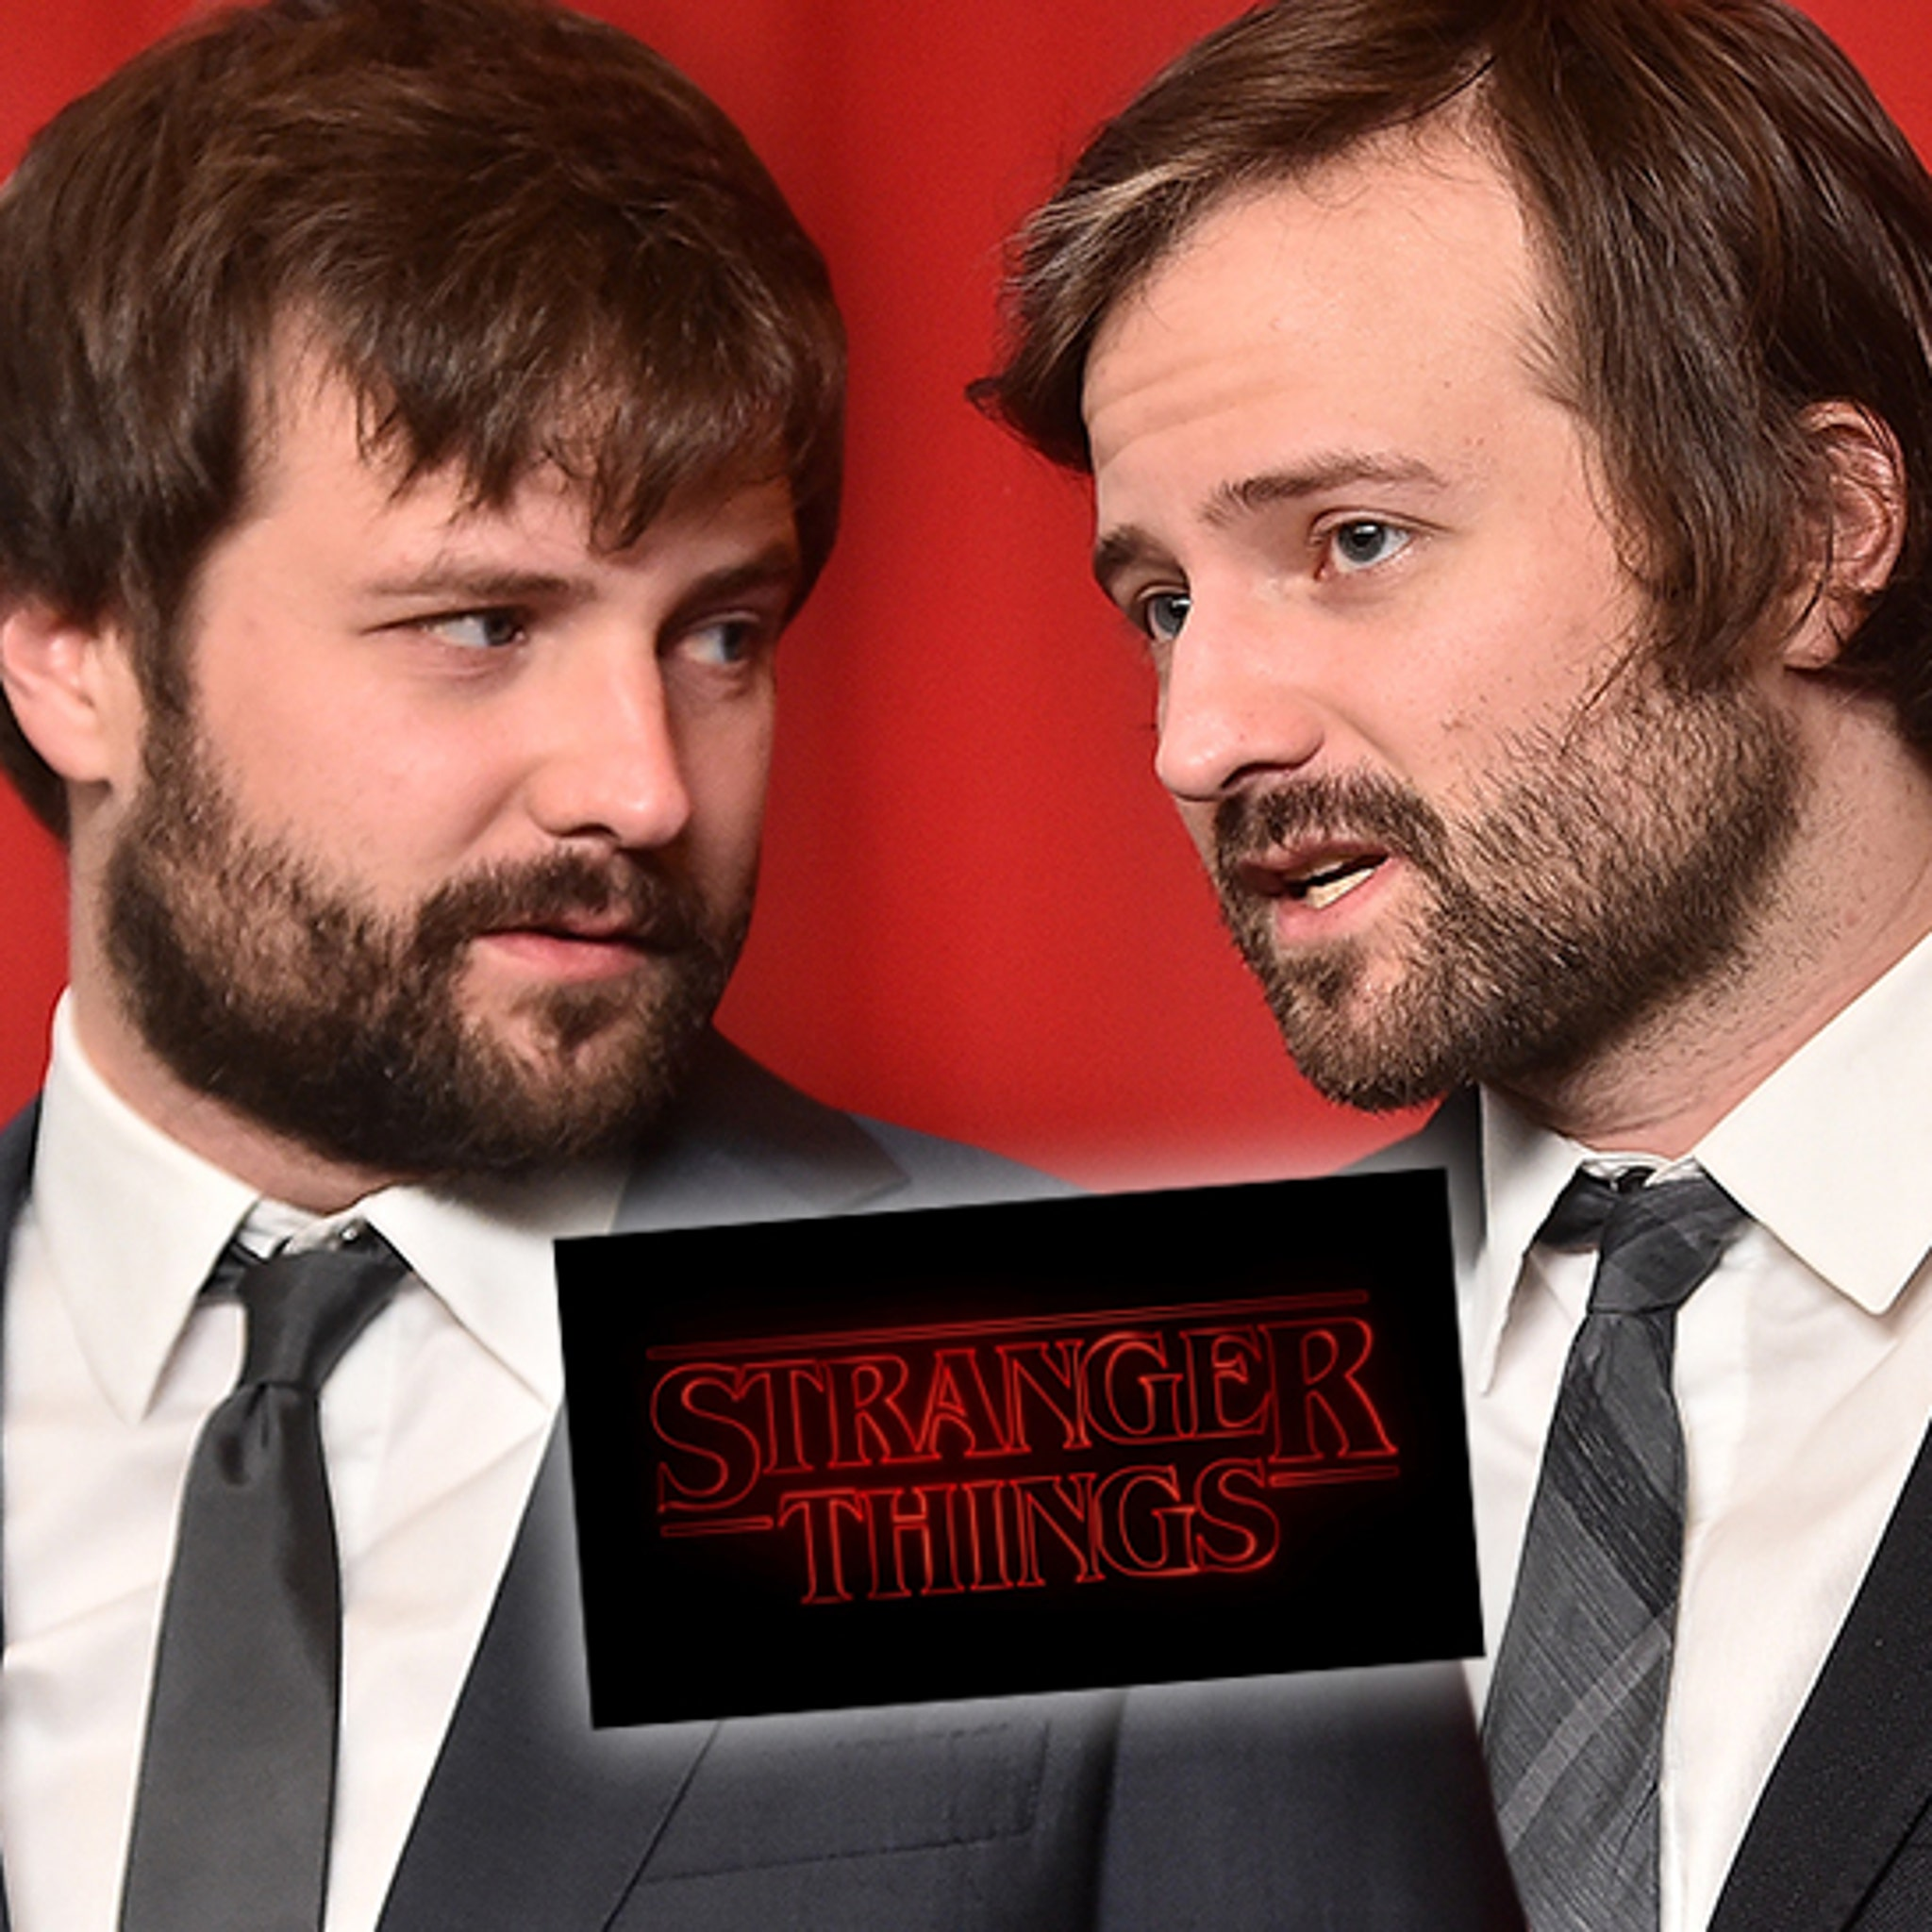 Stranger Things' Duffer Brothers Have Proof They Didn't